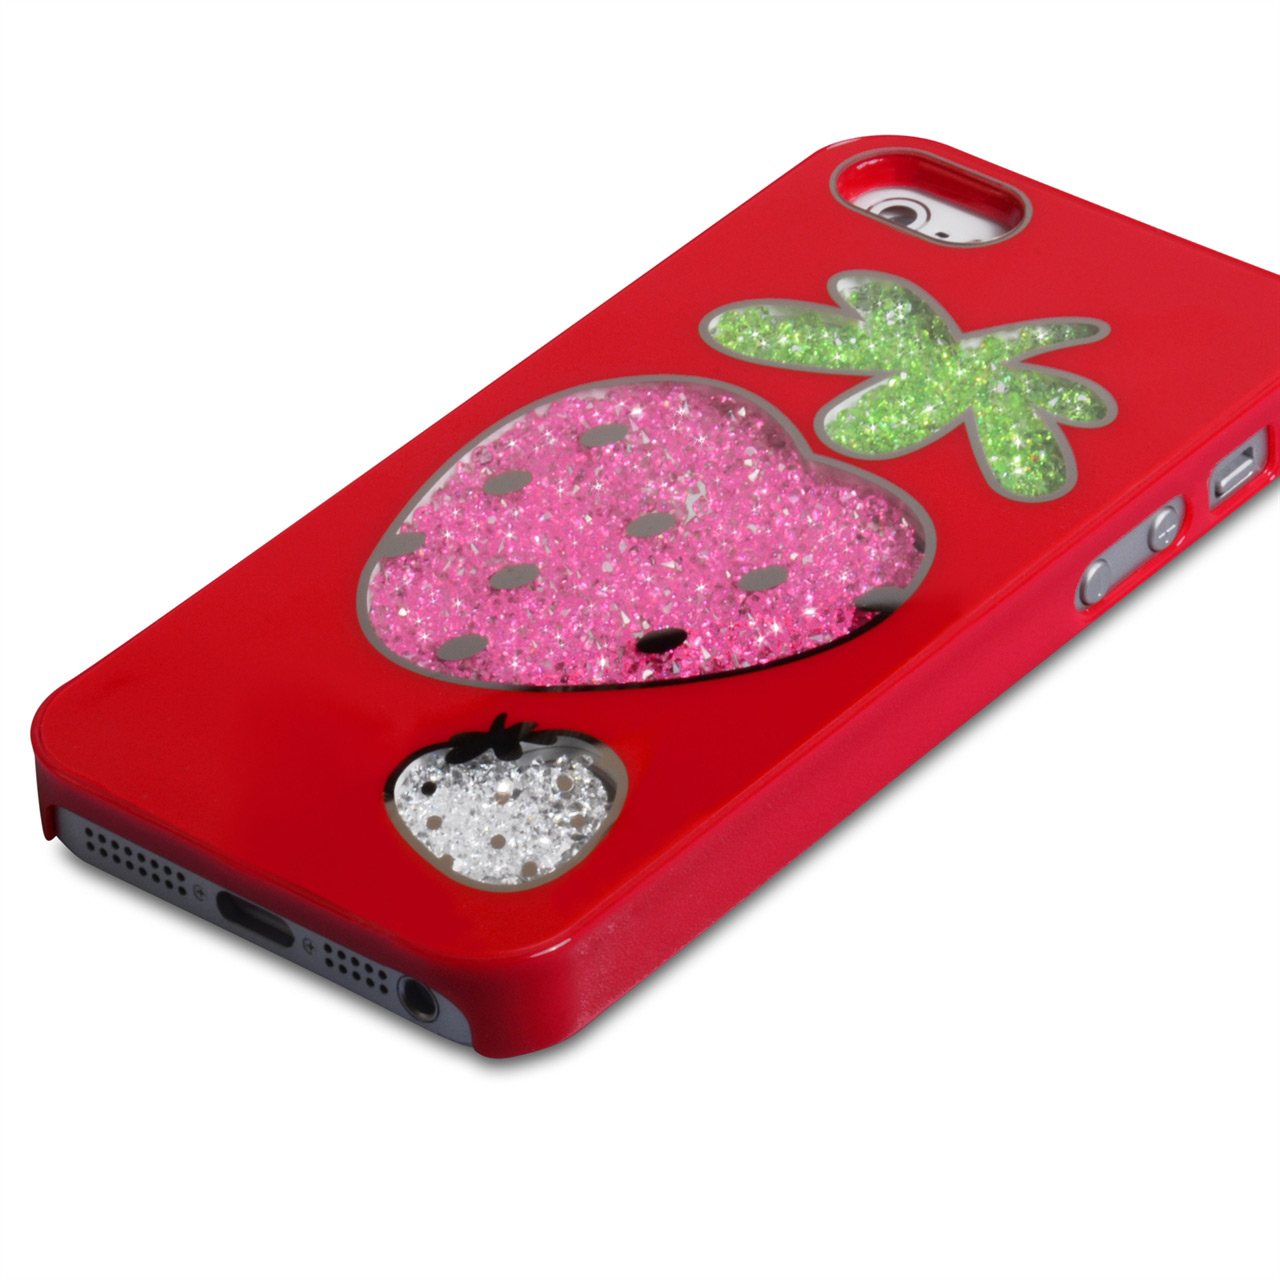 YouSave Accessories iPhone 5 / 5S Strawberry Bling Hard Case - Red